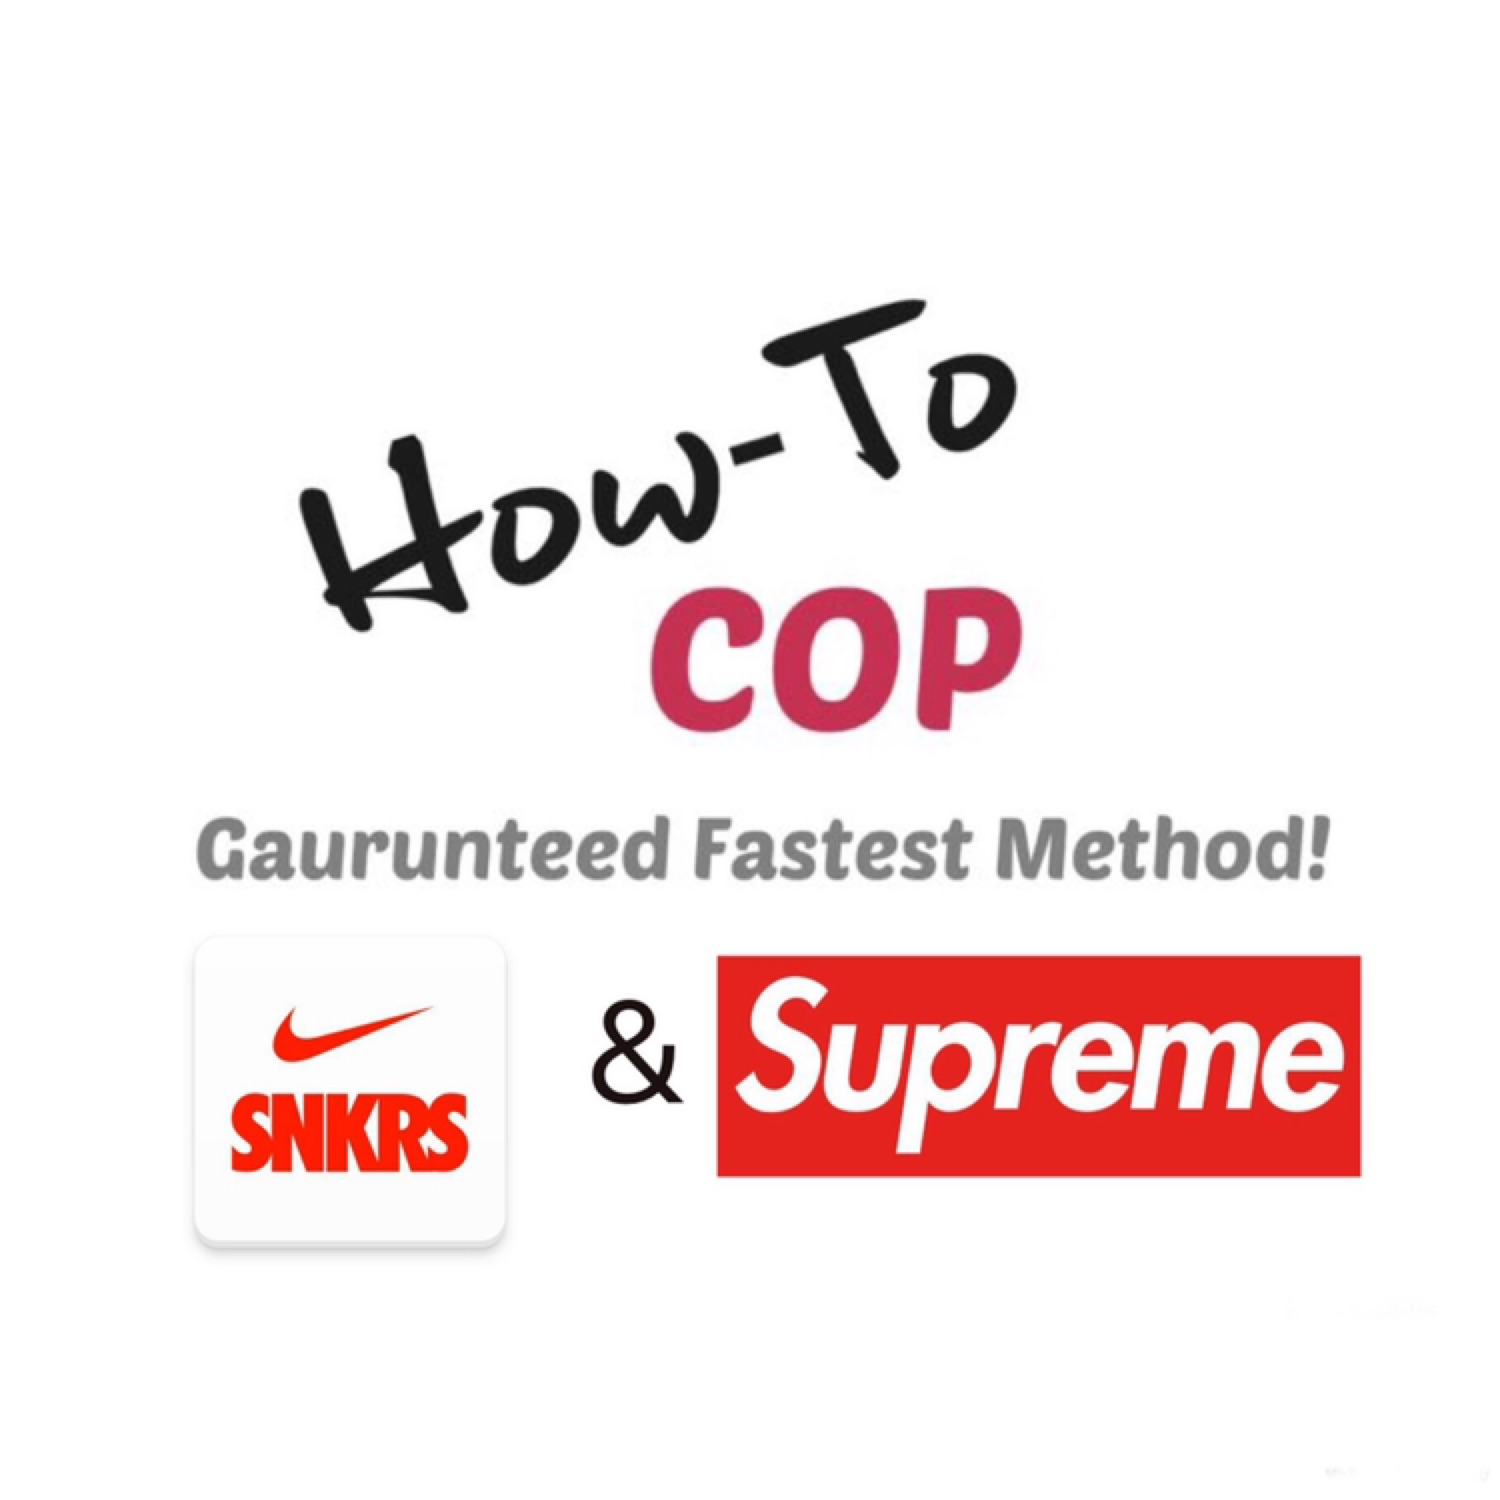 Supreme & Snkrs Fastest Checkout Guides Combo Deal